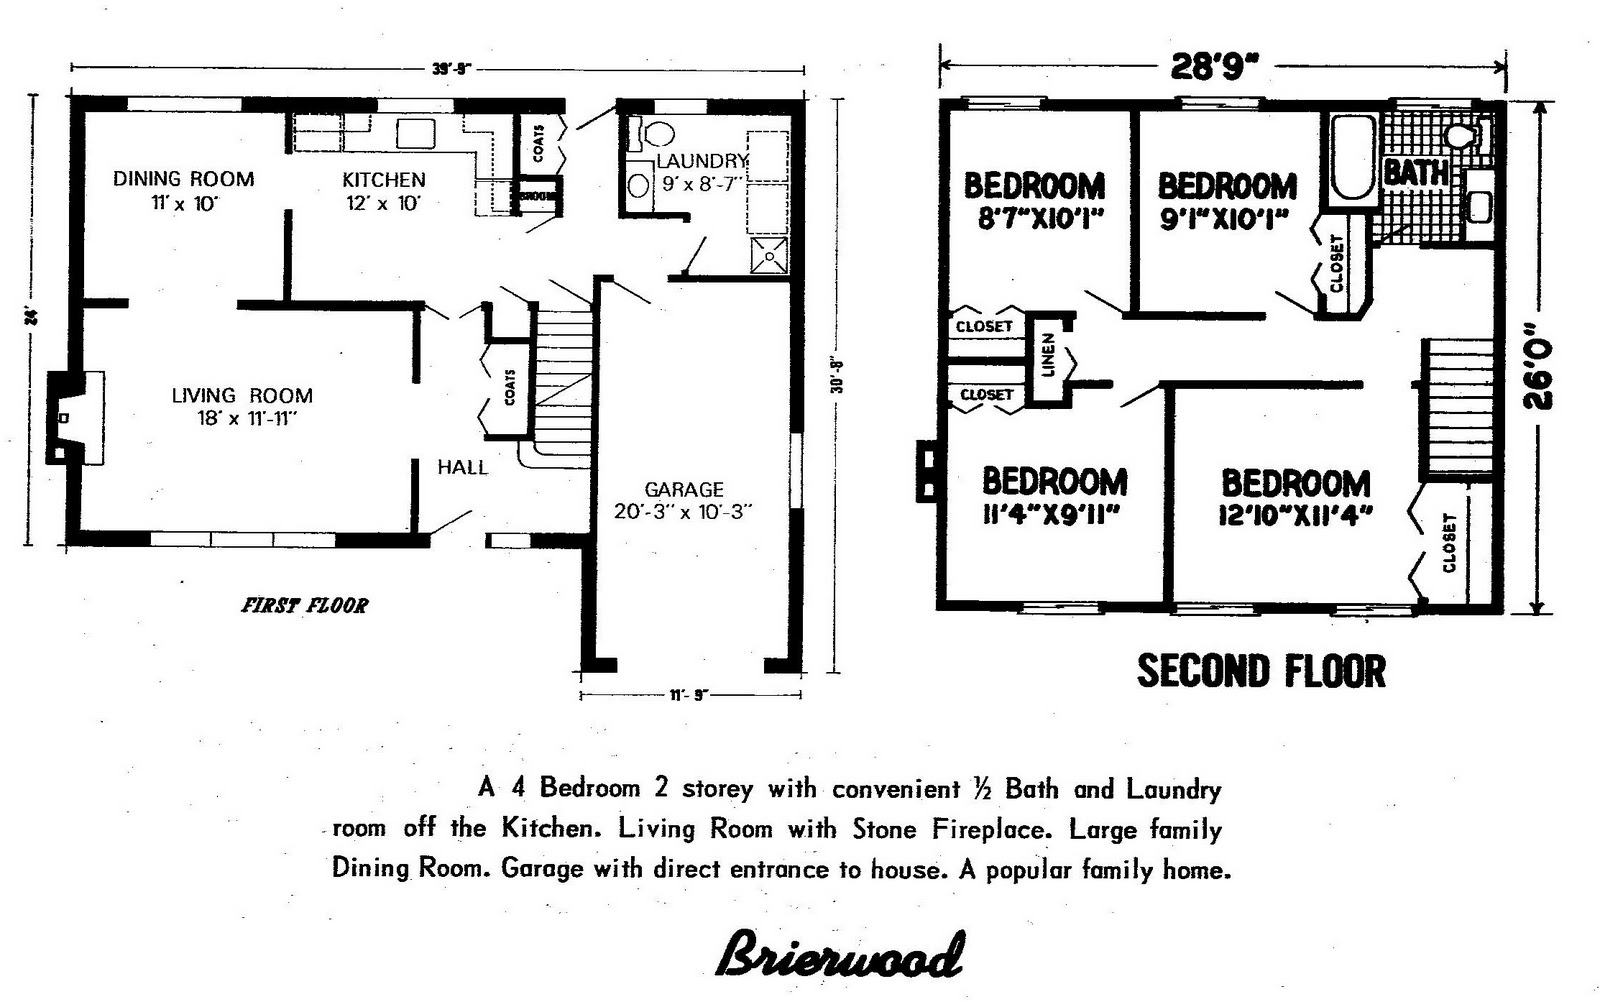 mid century modern and 1970s era ottawa january 2011 below i present the 1968 floor plans for lynwood by edstan